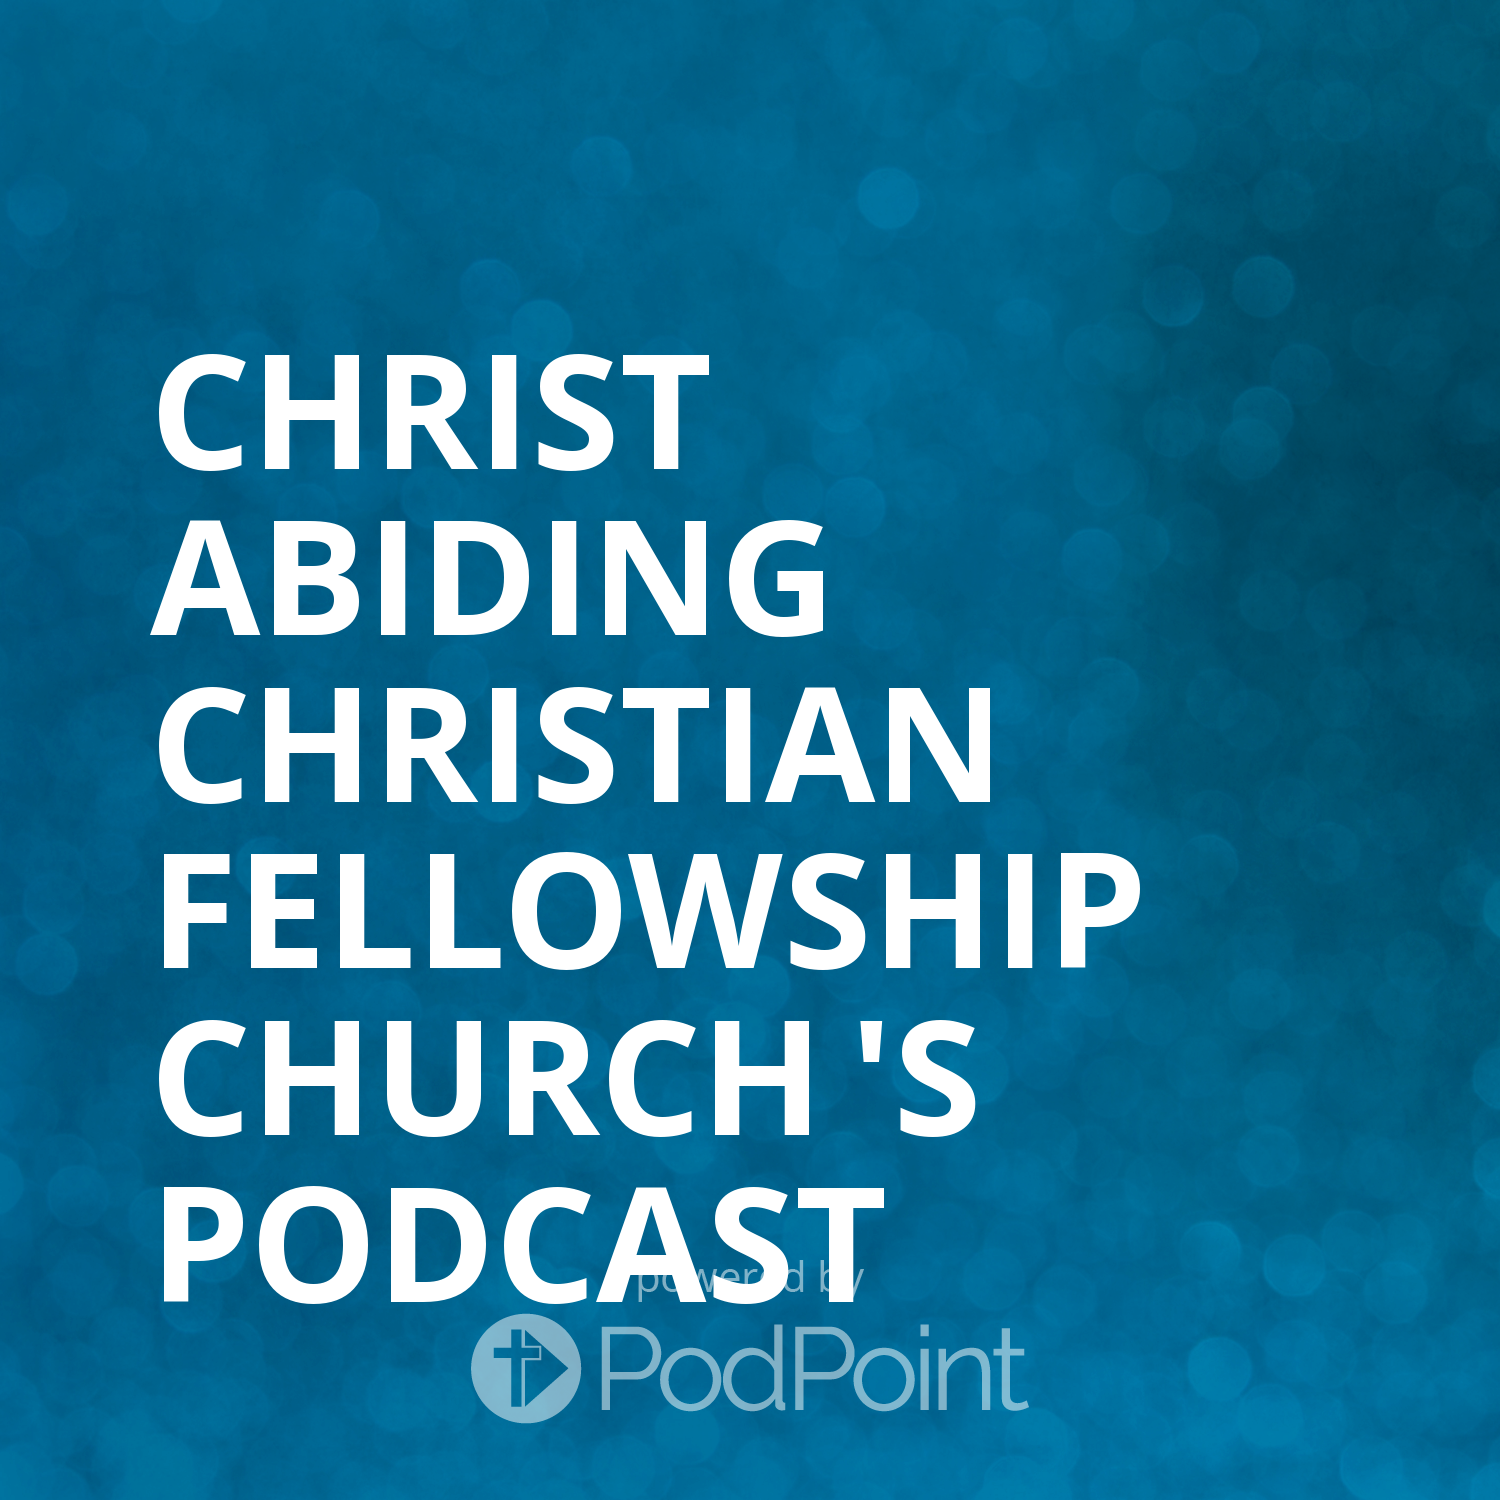 CHRIST ABIDING CHRISTIAN FELLOWSHIP Church 's Podcast